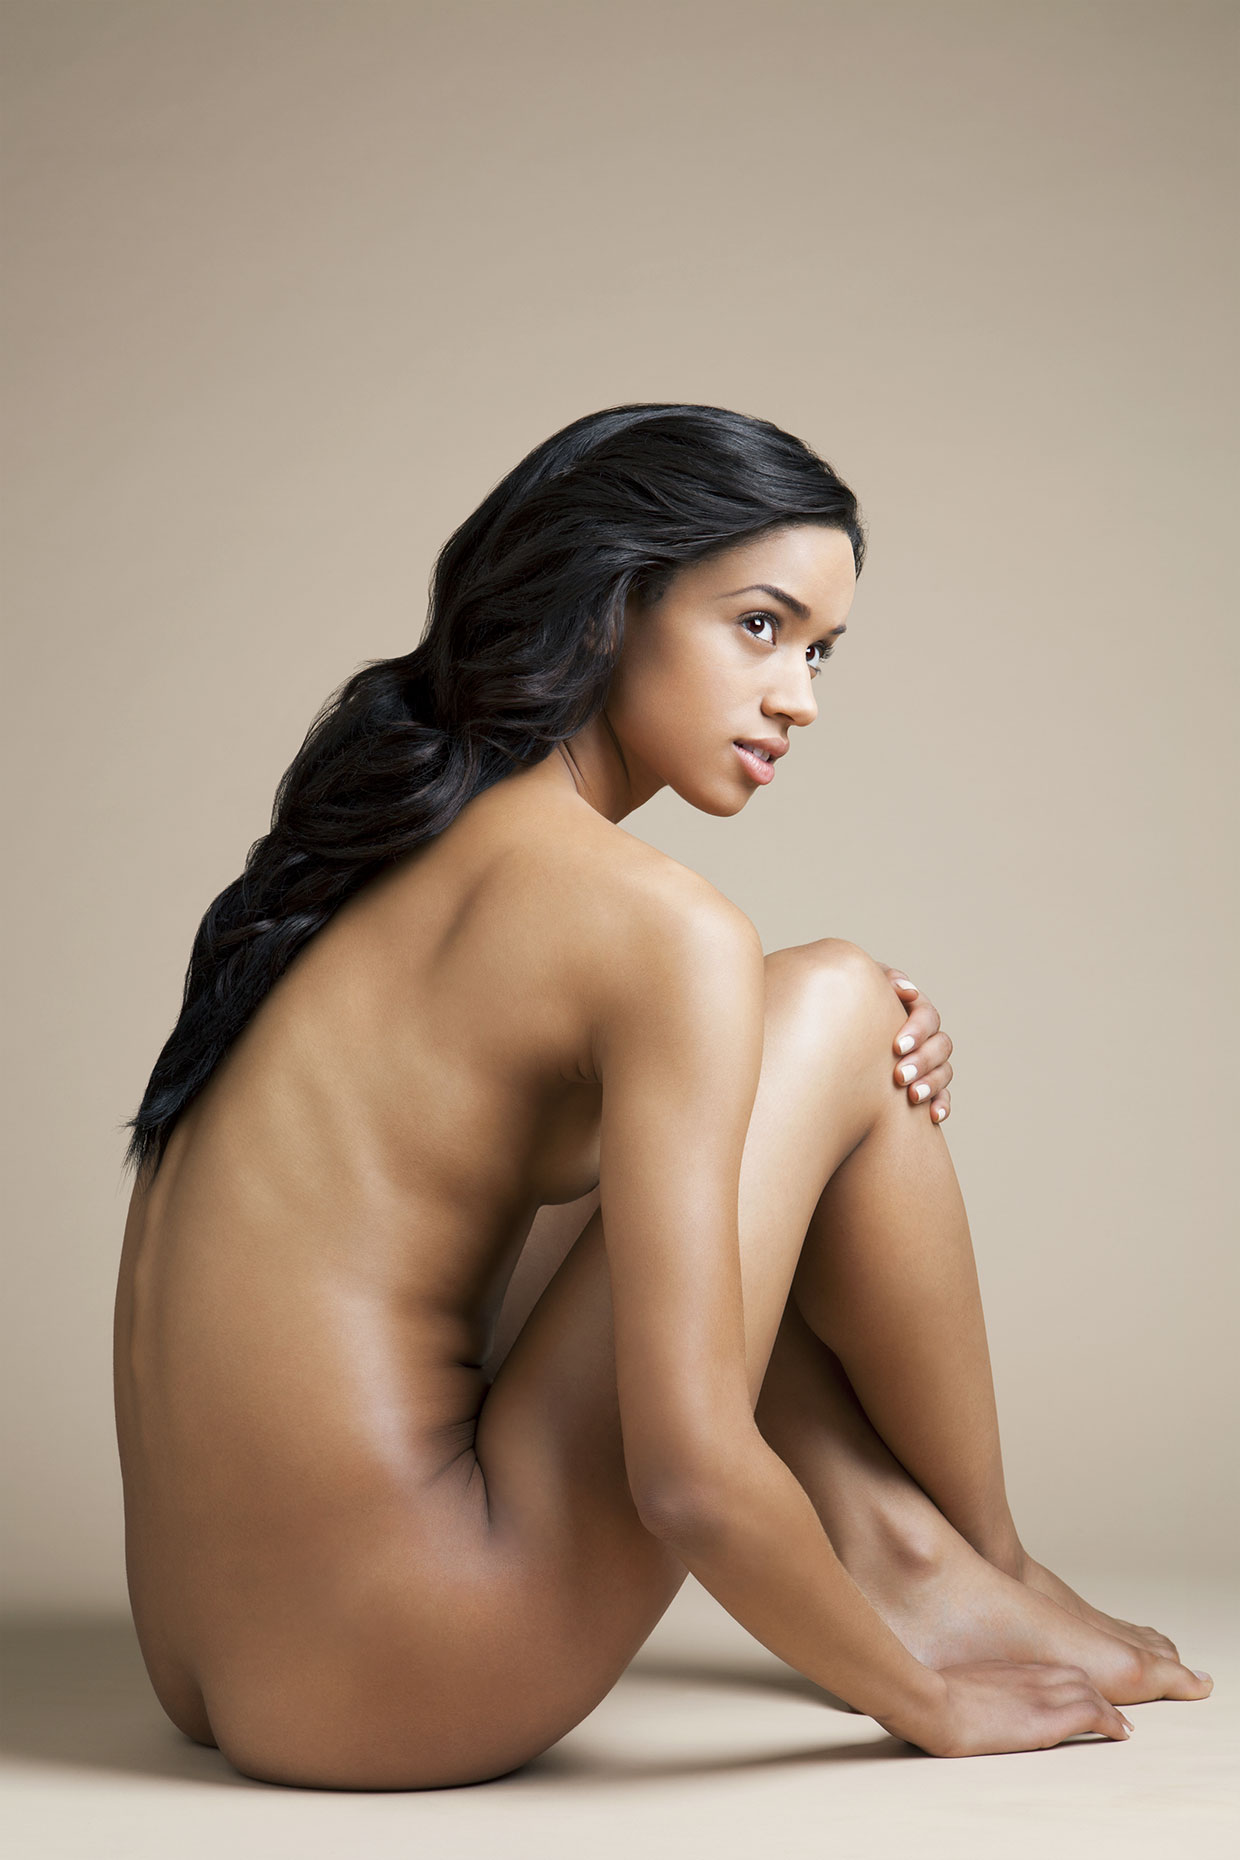 Nude young woman sitting in profile position.